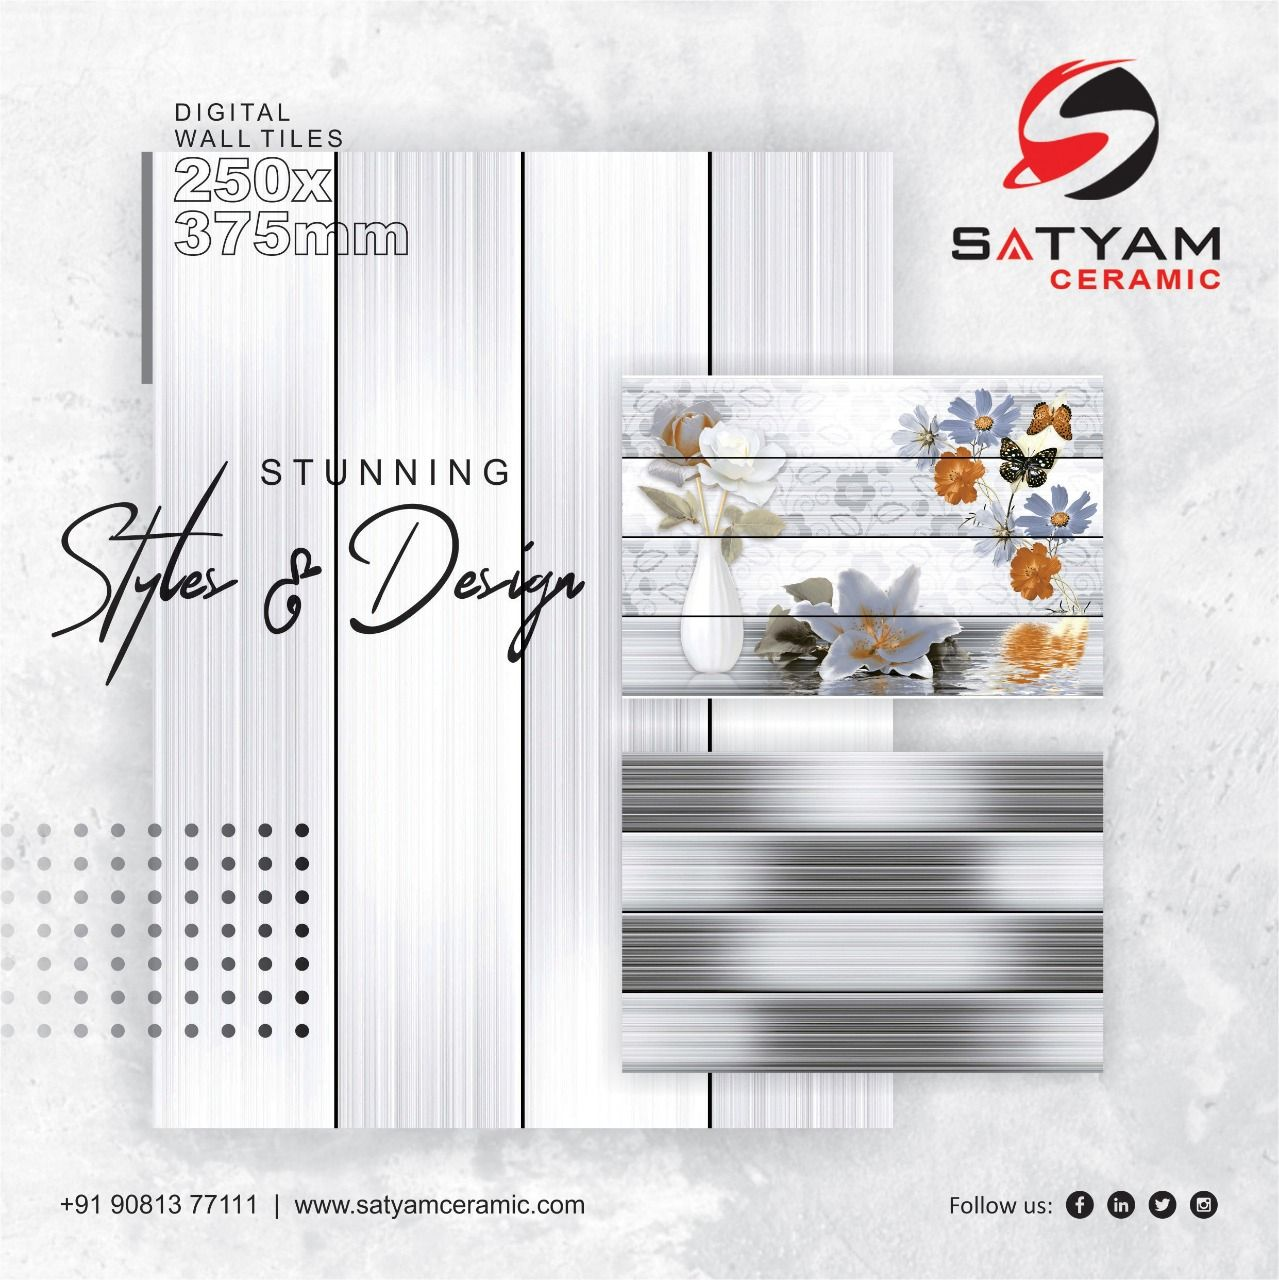 Stunning Styles Design Satyam Ceramic Digital Wall Tiles 250x375 Mm Satyamceramic Satyamtiles Digitalwalltiles Walltile Wall Tiles Digital Wall Tiles